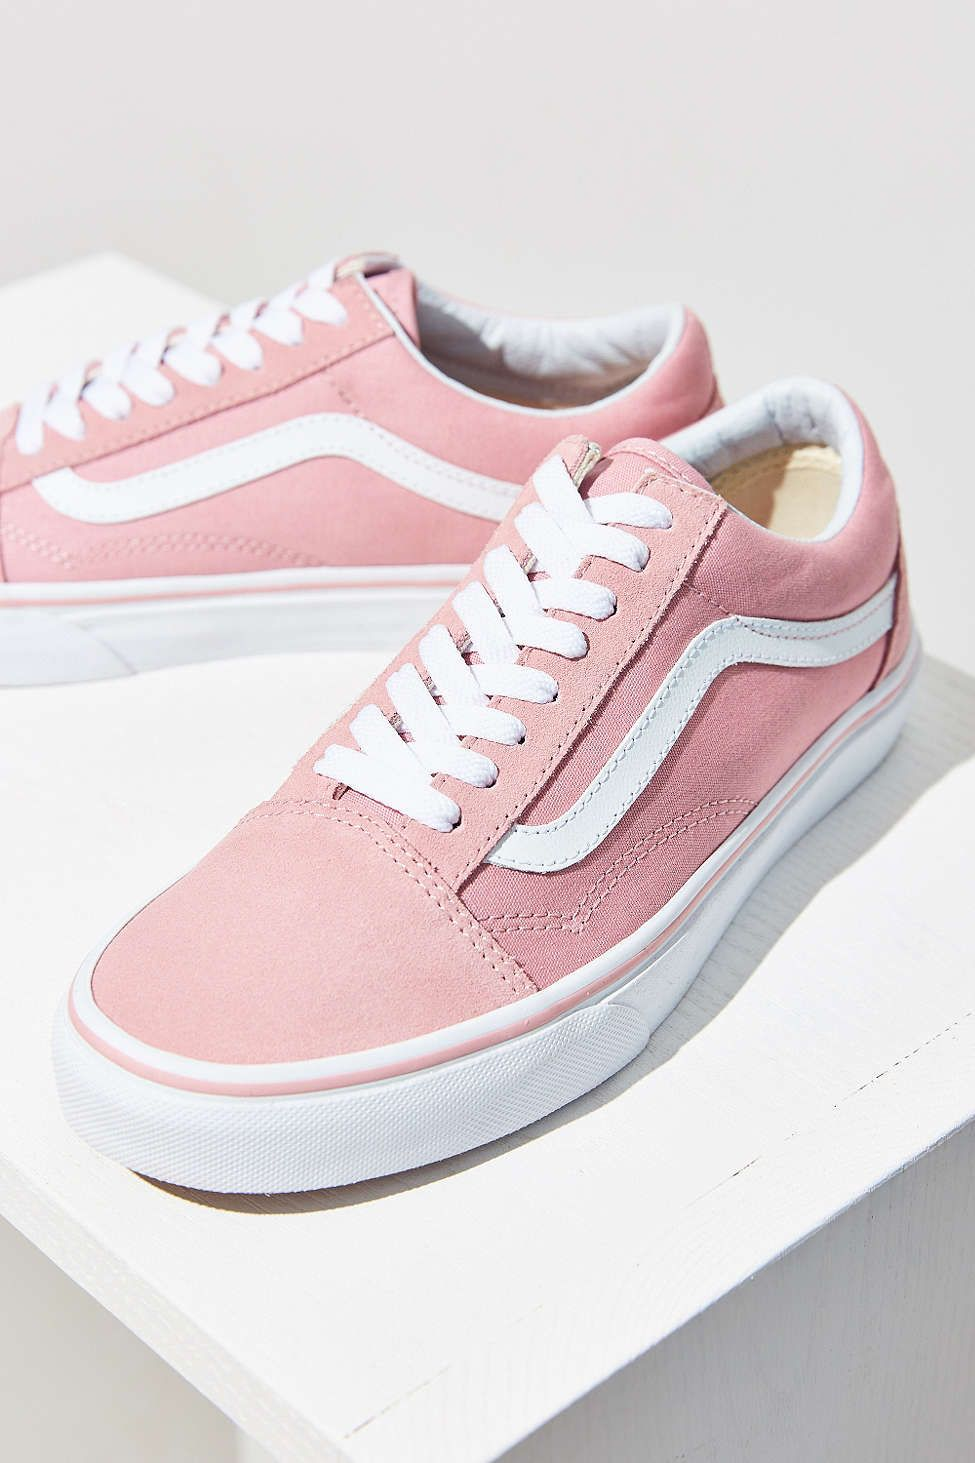 Vans Light Pink Vans Pink Old Skool Sn...